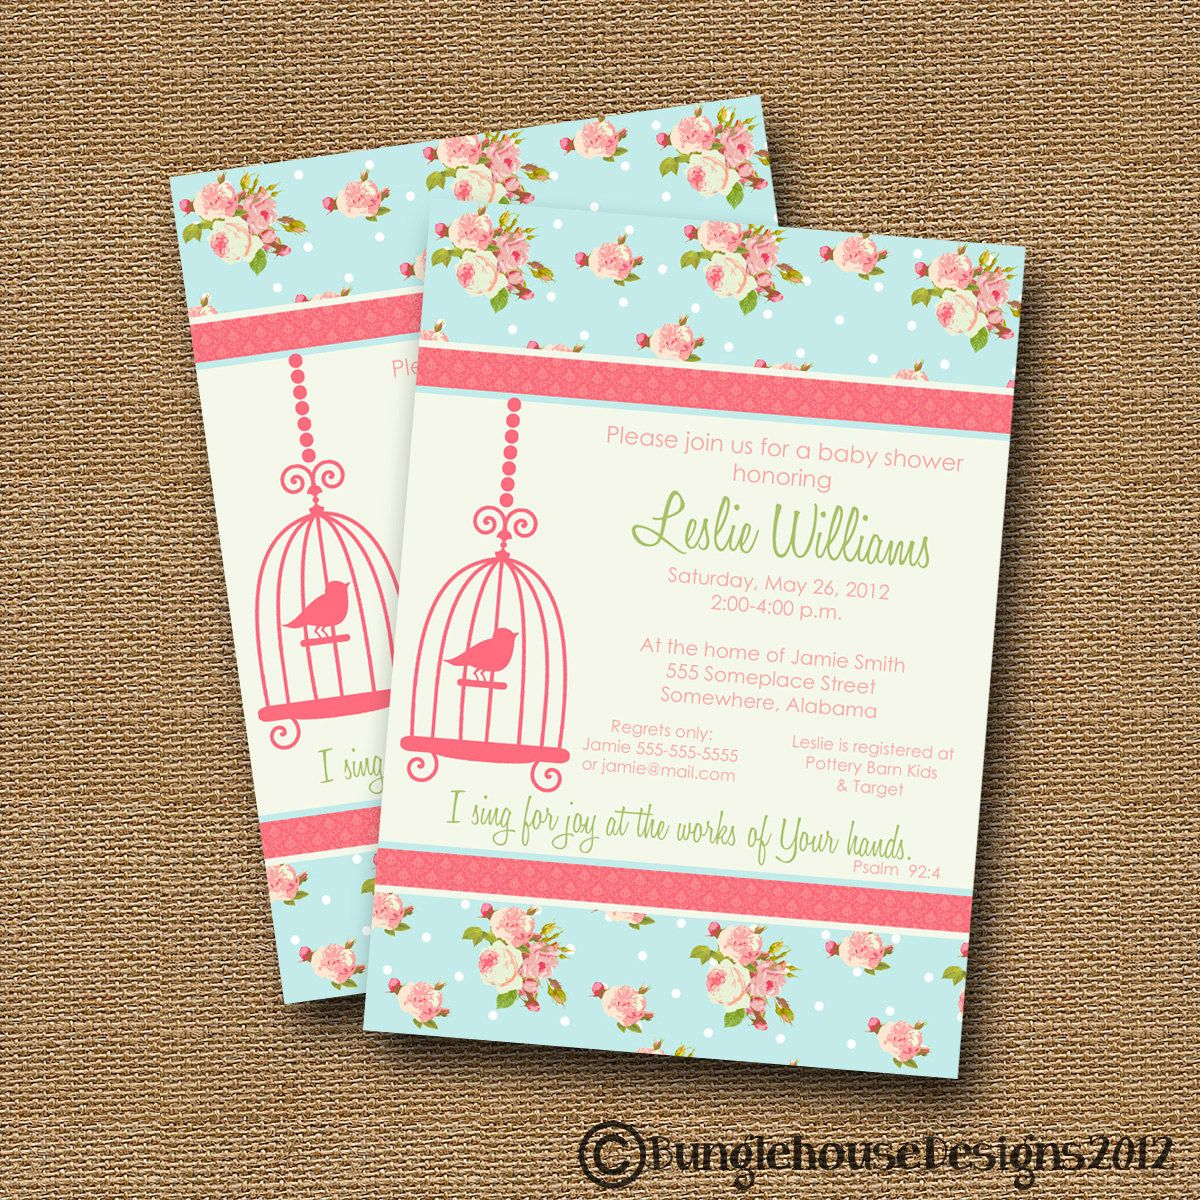 Shabby Chic Baby Shower Invitation BLUE Floral with Bird Cage ...